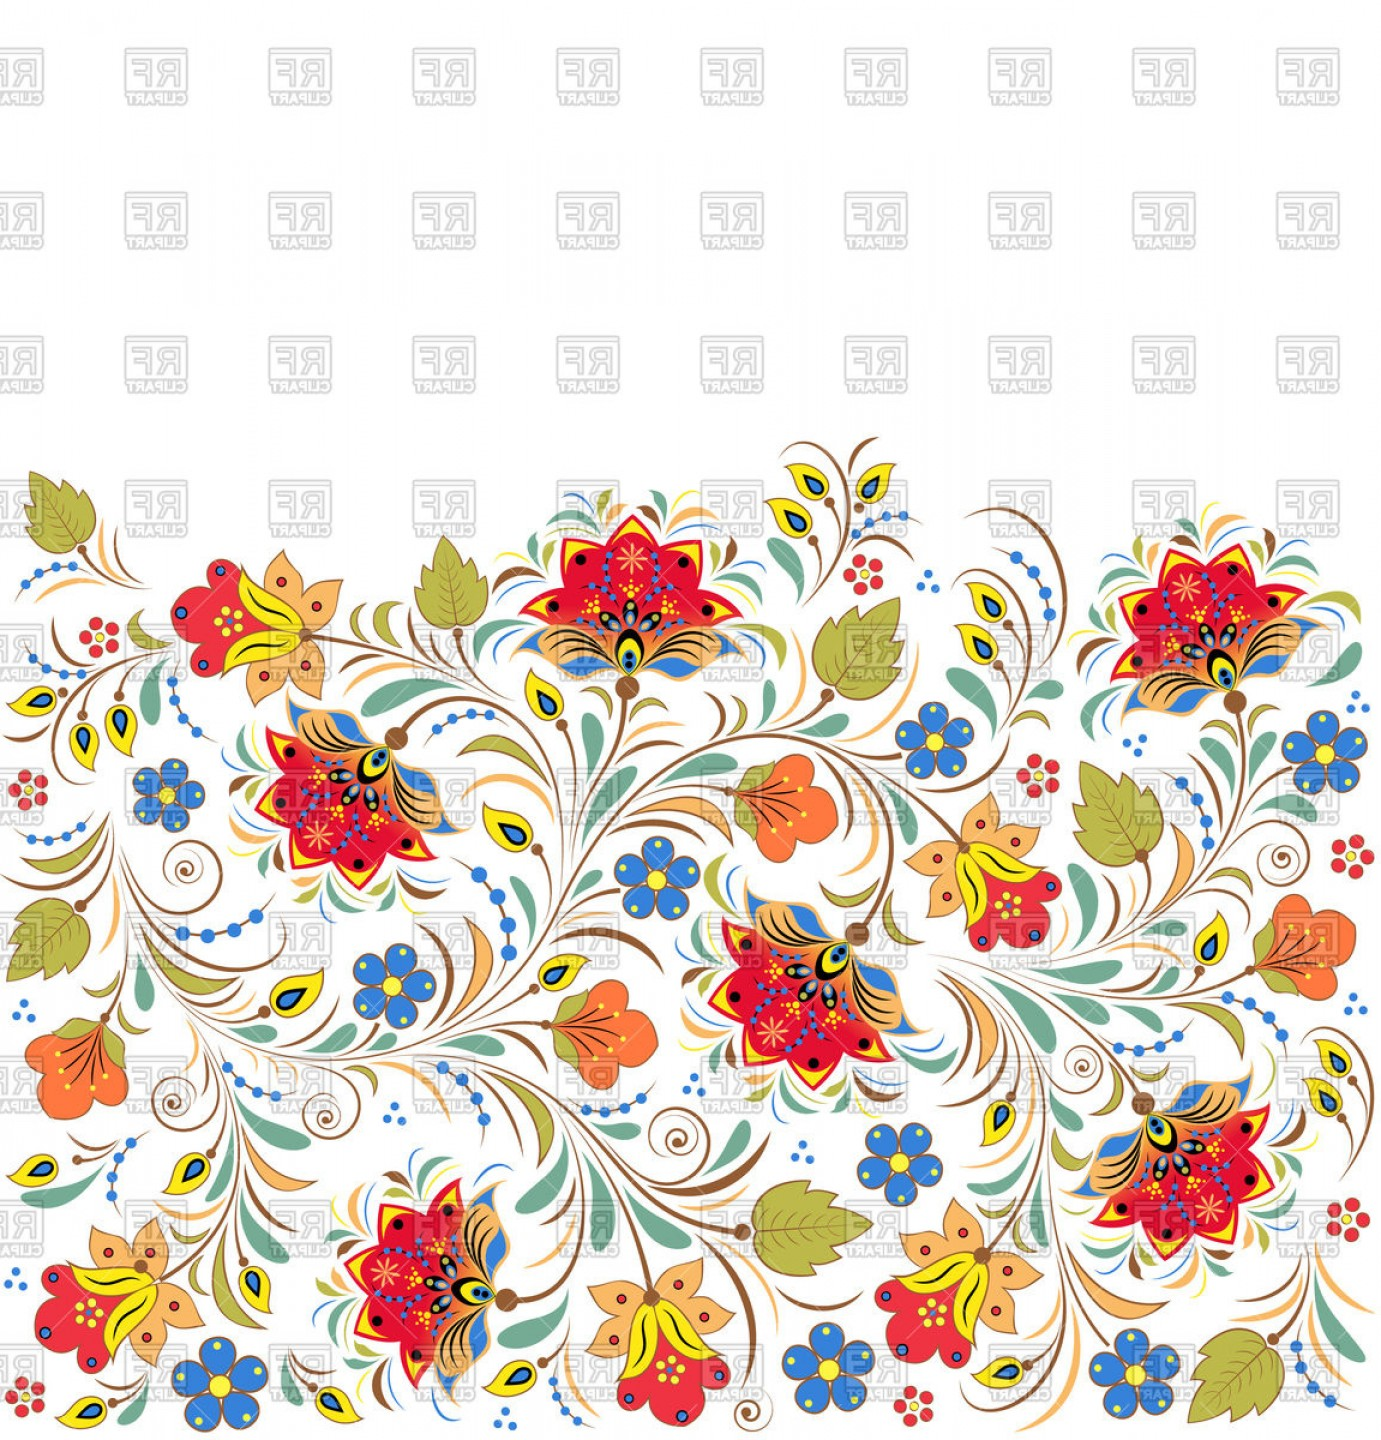 Russian Patterns Vector: Russian Floral Khokhloma Pattern Vector Clipart